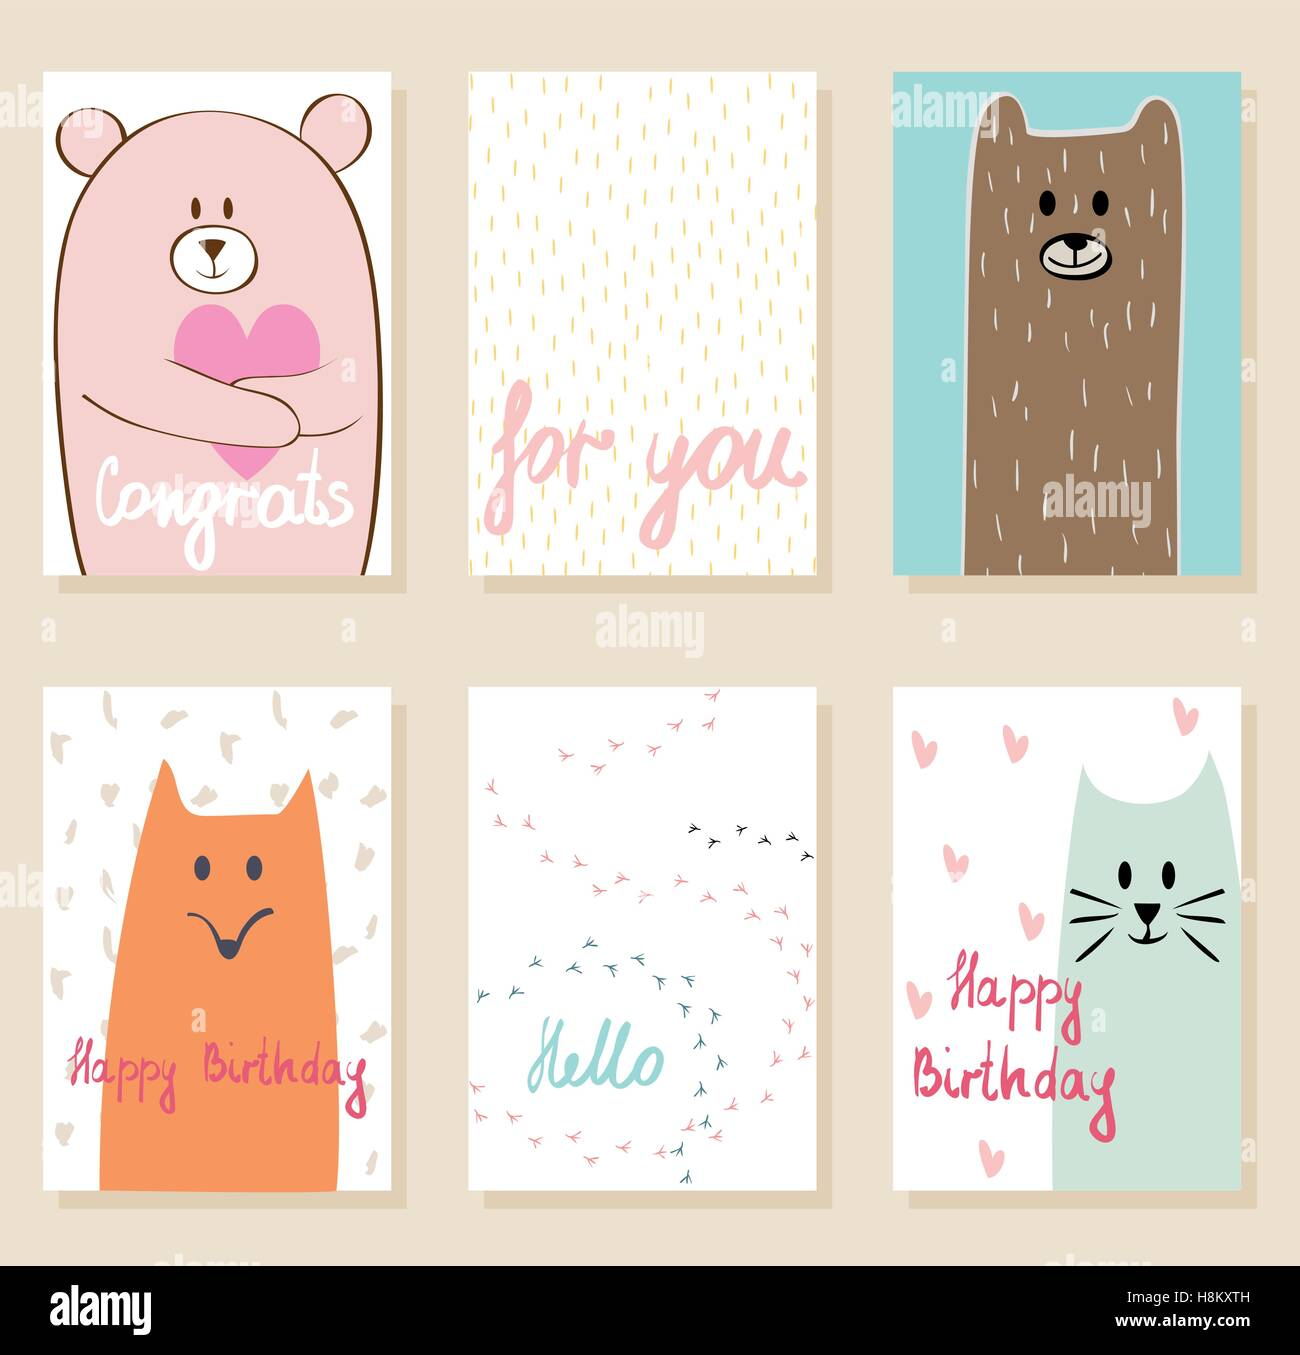 Vector artistic card - Stock Image